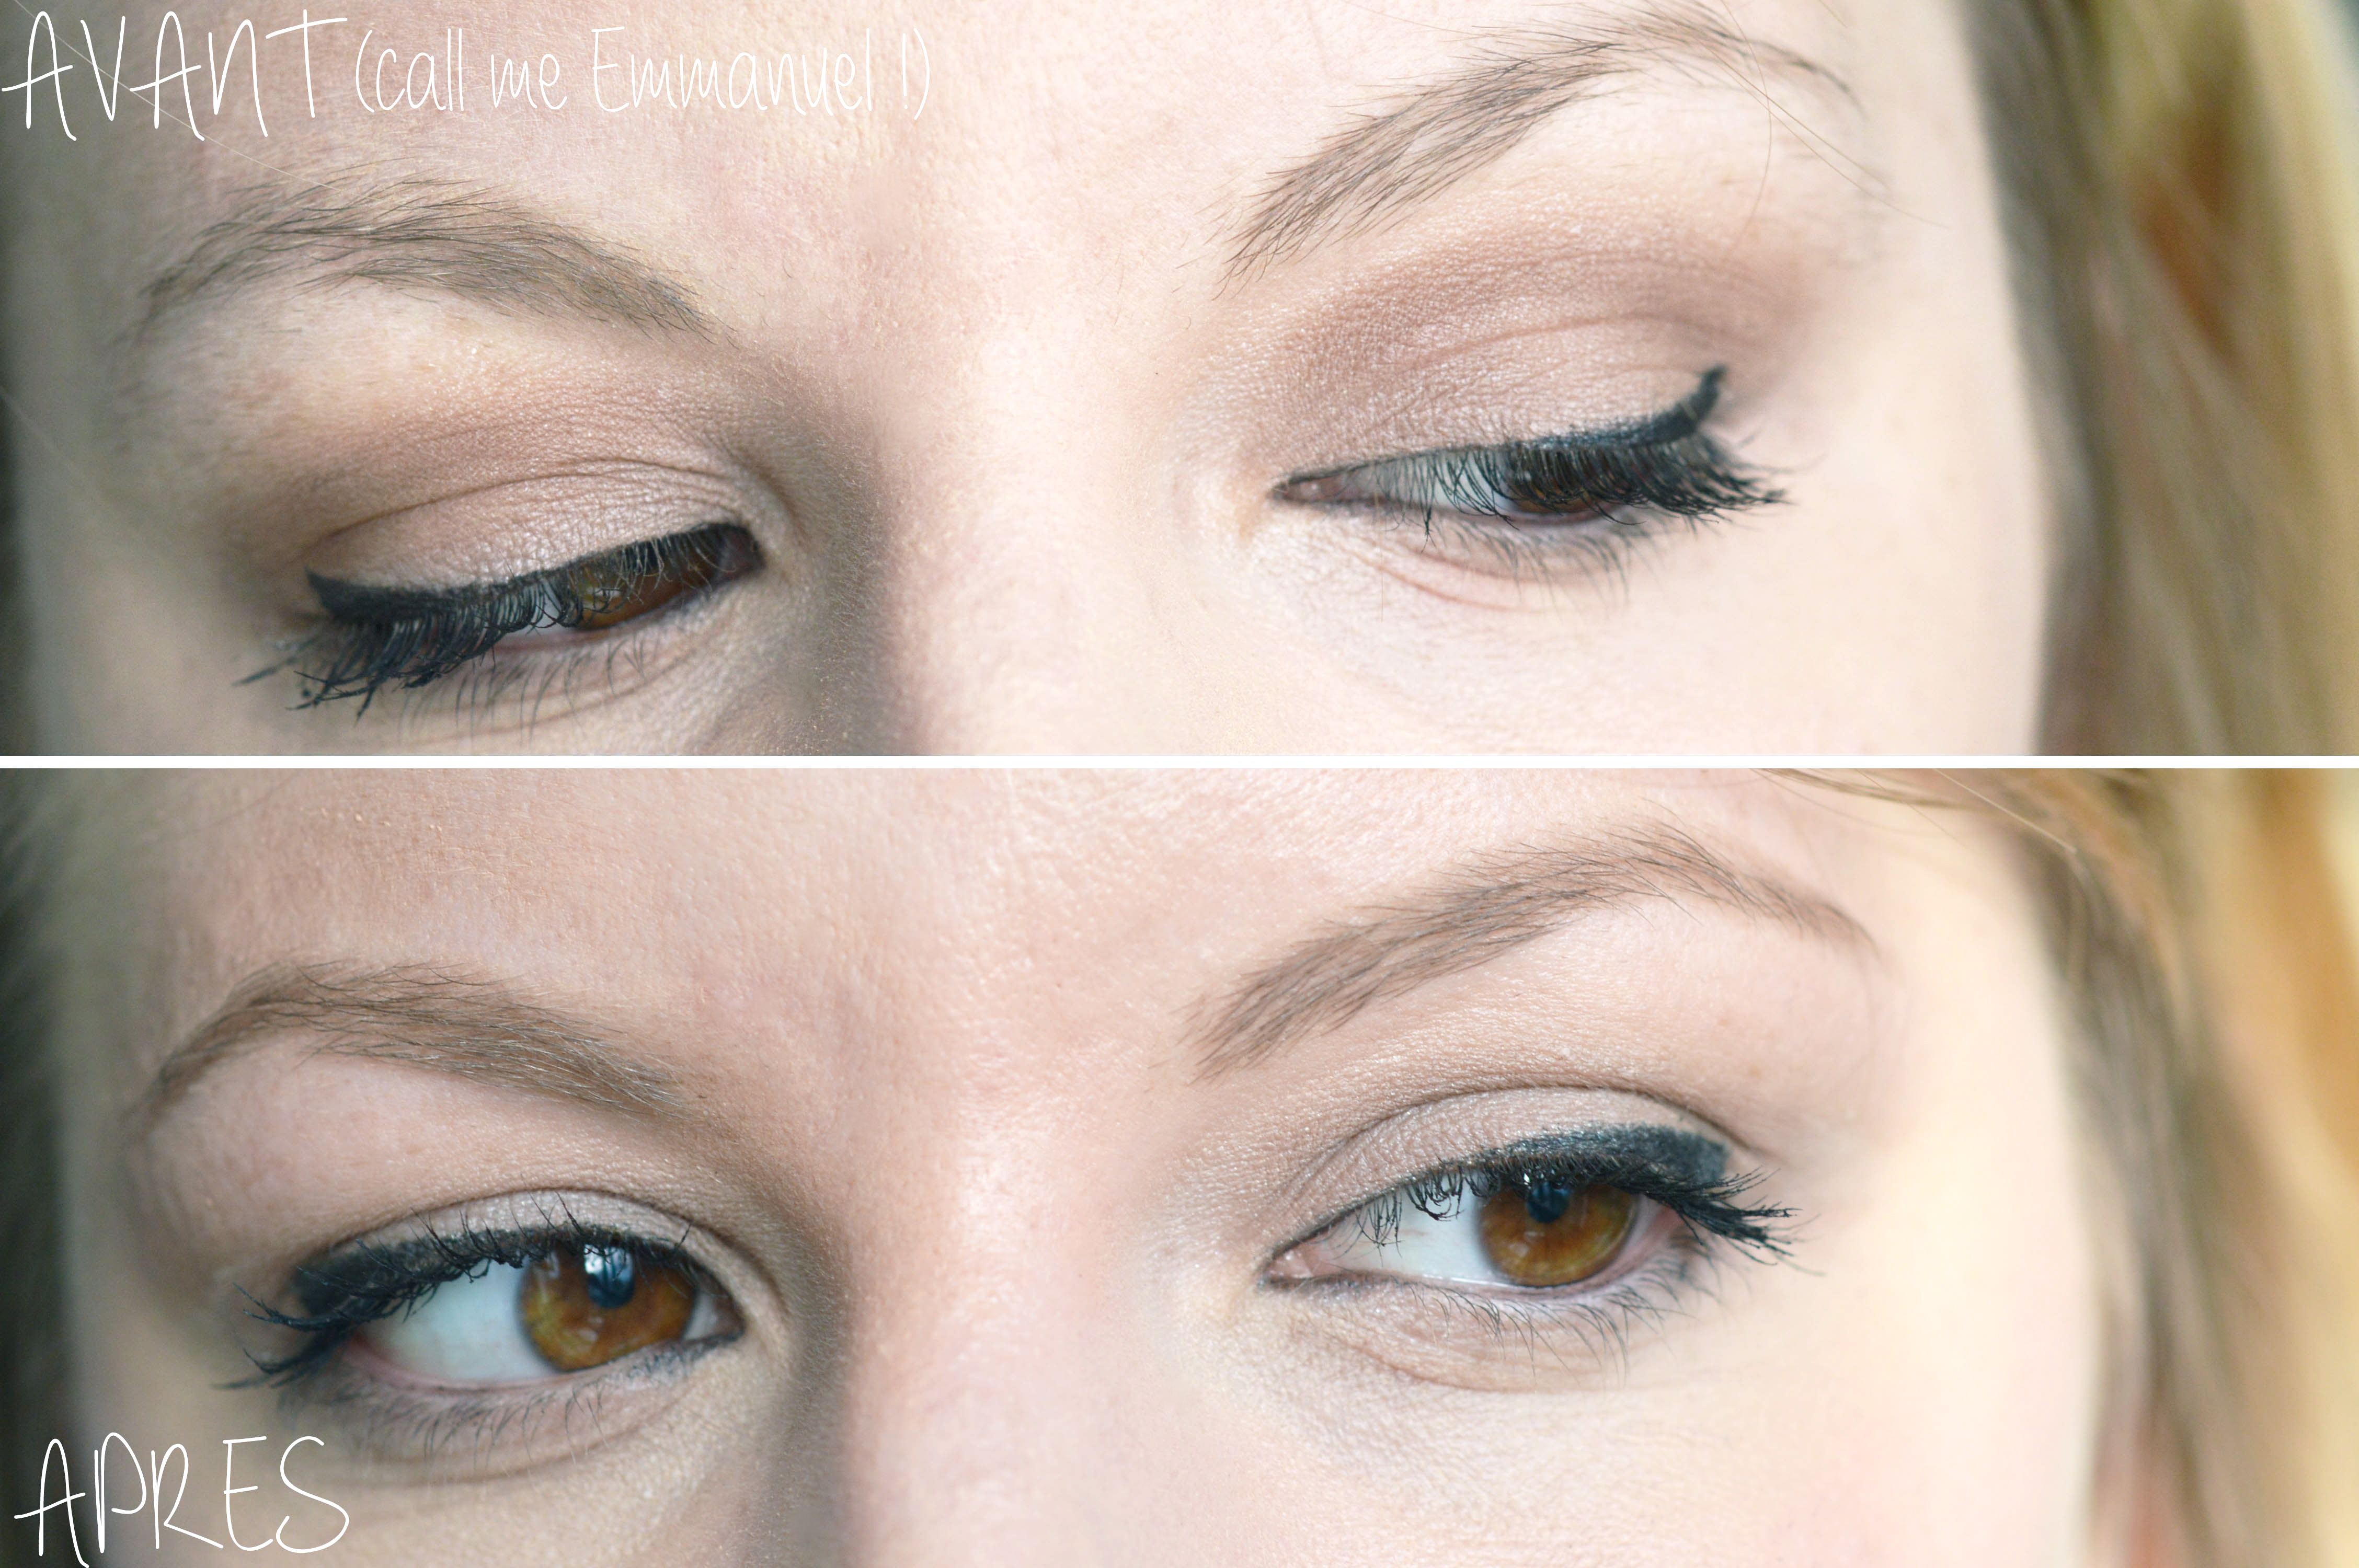 alittleb_blog_beaute_brow_bar_story_ou_comment_benefit_ma_reconsillie_avec_mes_sourcils_apresprestationavant_apres - Coloration Sourcils Sephora